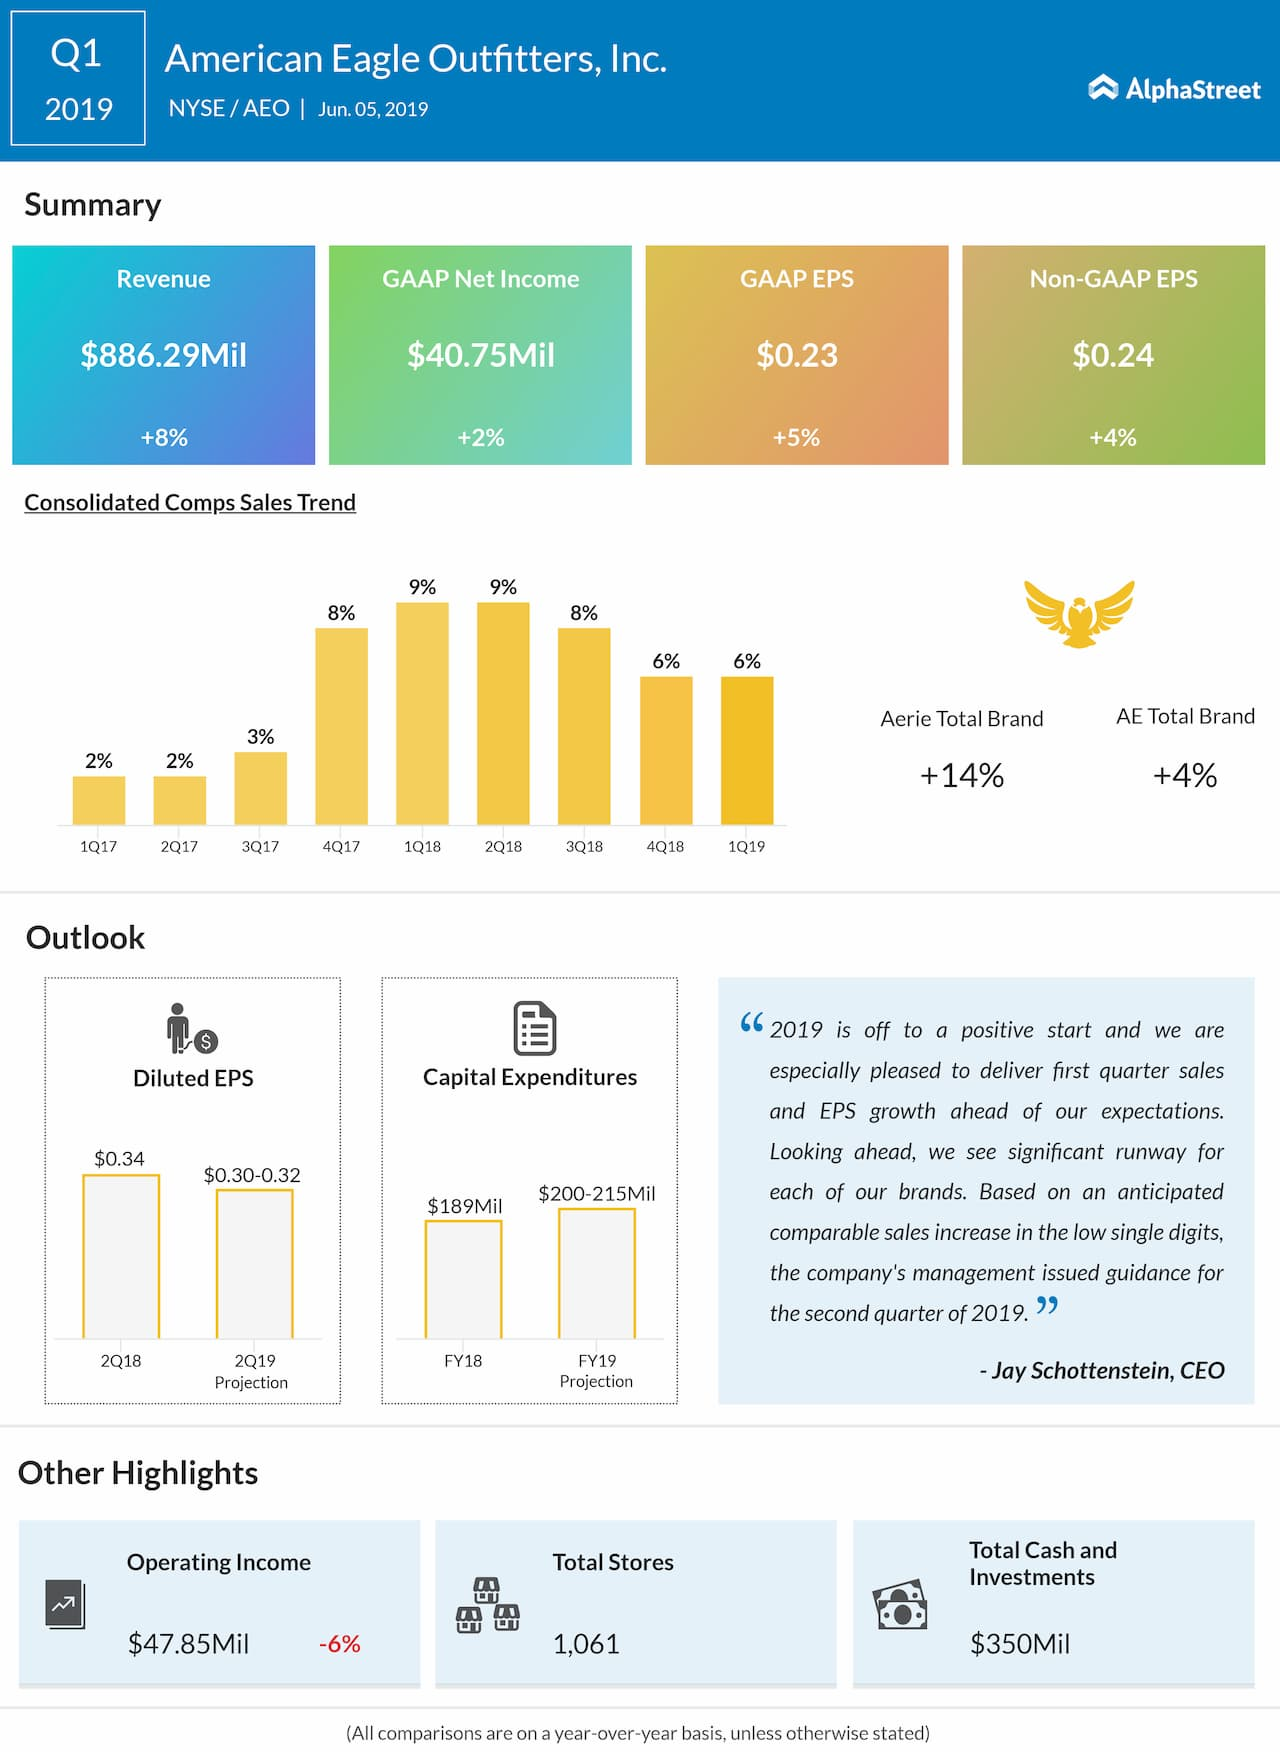 American Eagle Outfitters (AEO) first quarter 2019 earnings snapshot